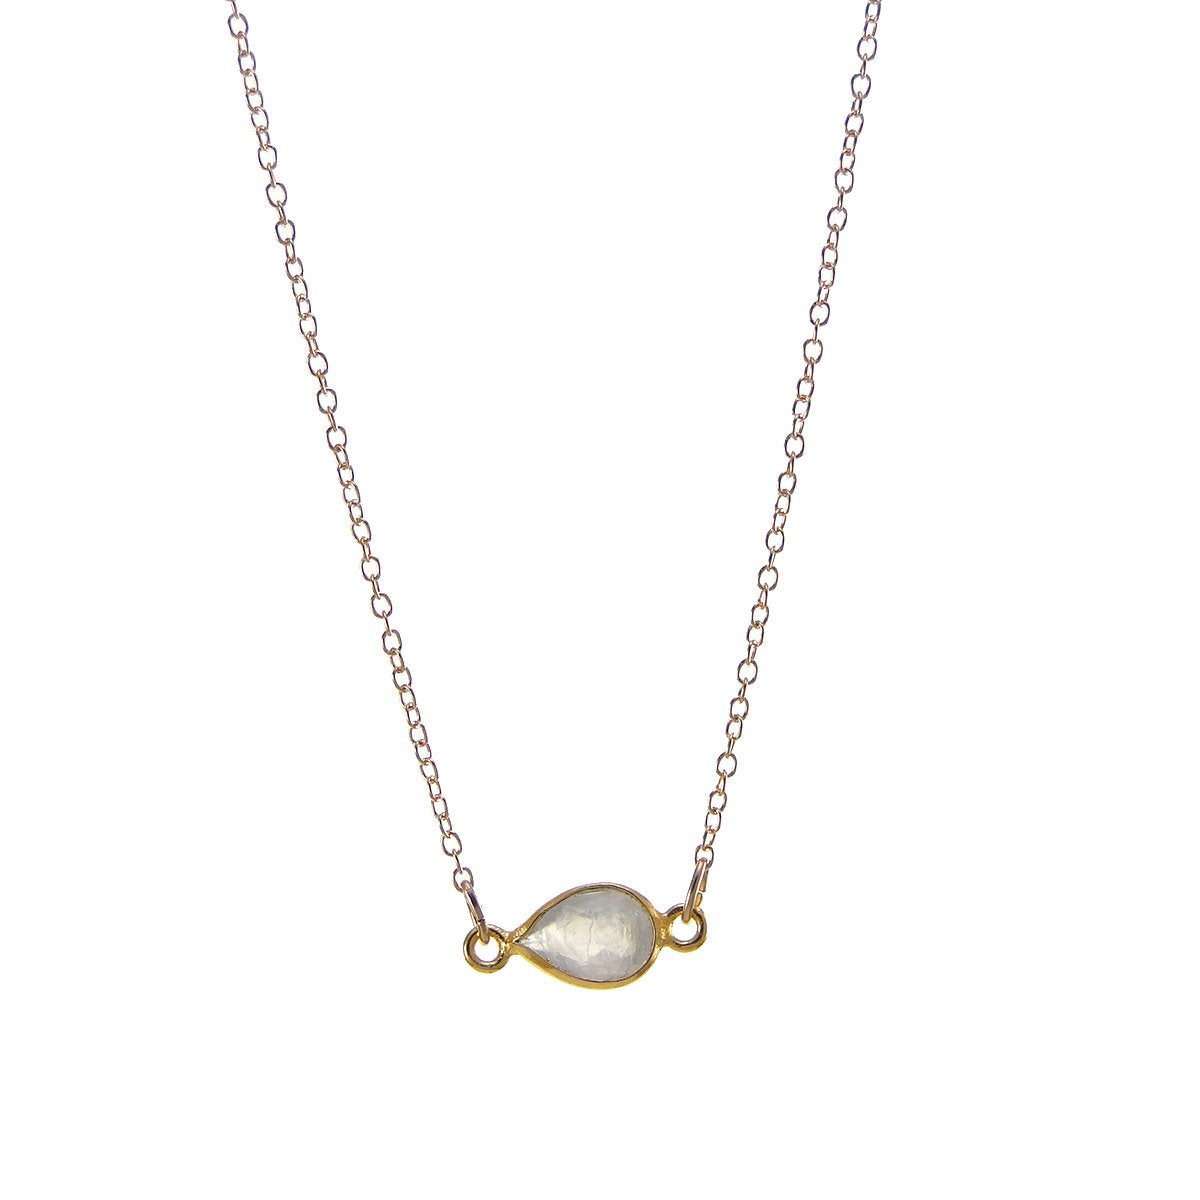 Rainbow Moostone Delicate Gem Necklace - Tiny Stone Layered Necklace - Little Dainty 14K Gold Filled Necklace